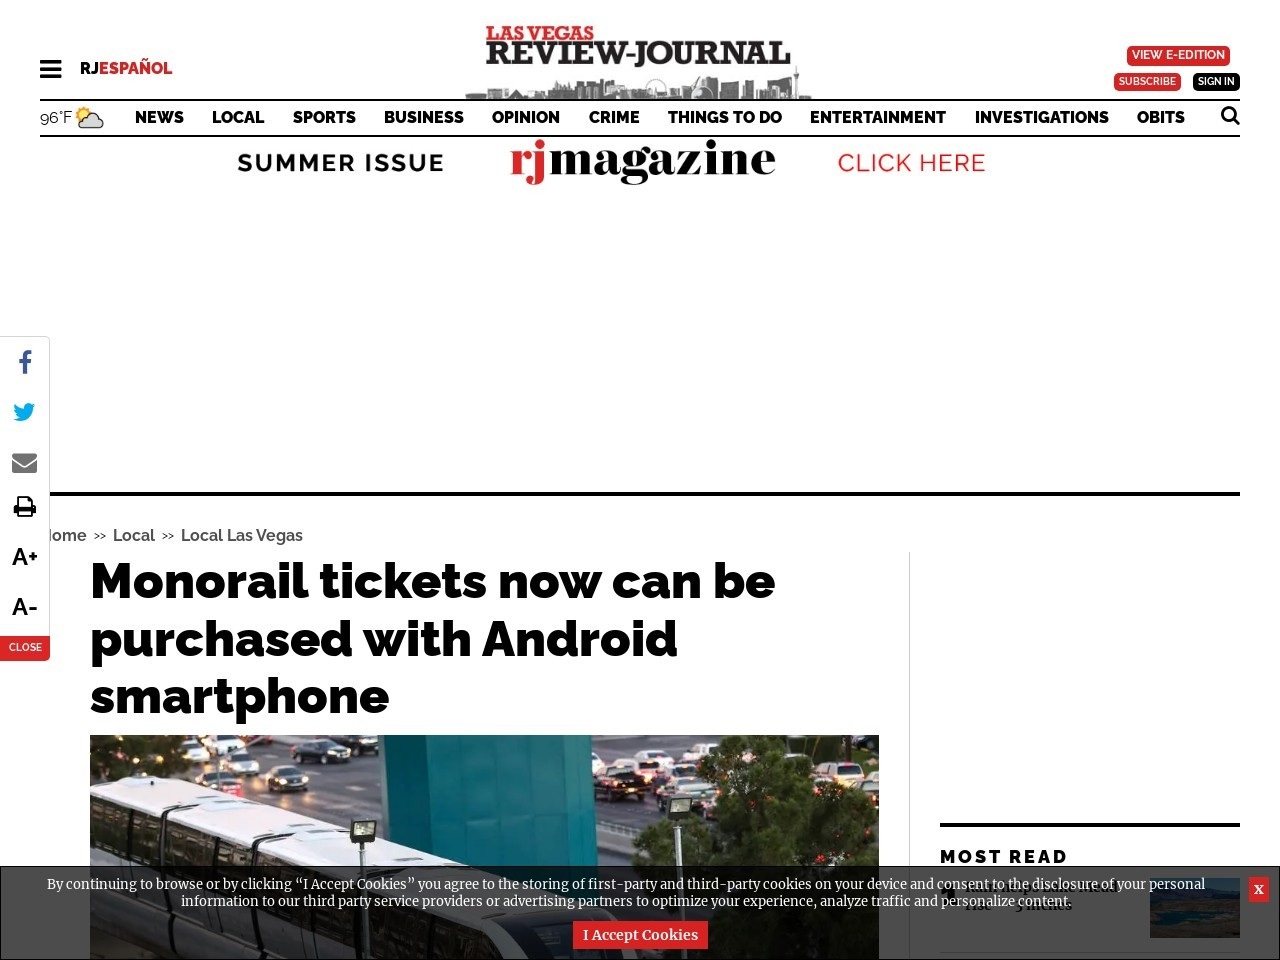 Monorail tickets now can be purchased with Android smartphone